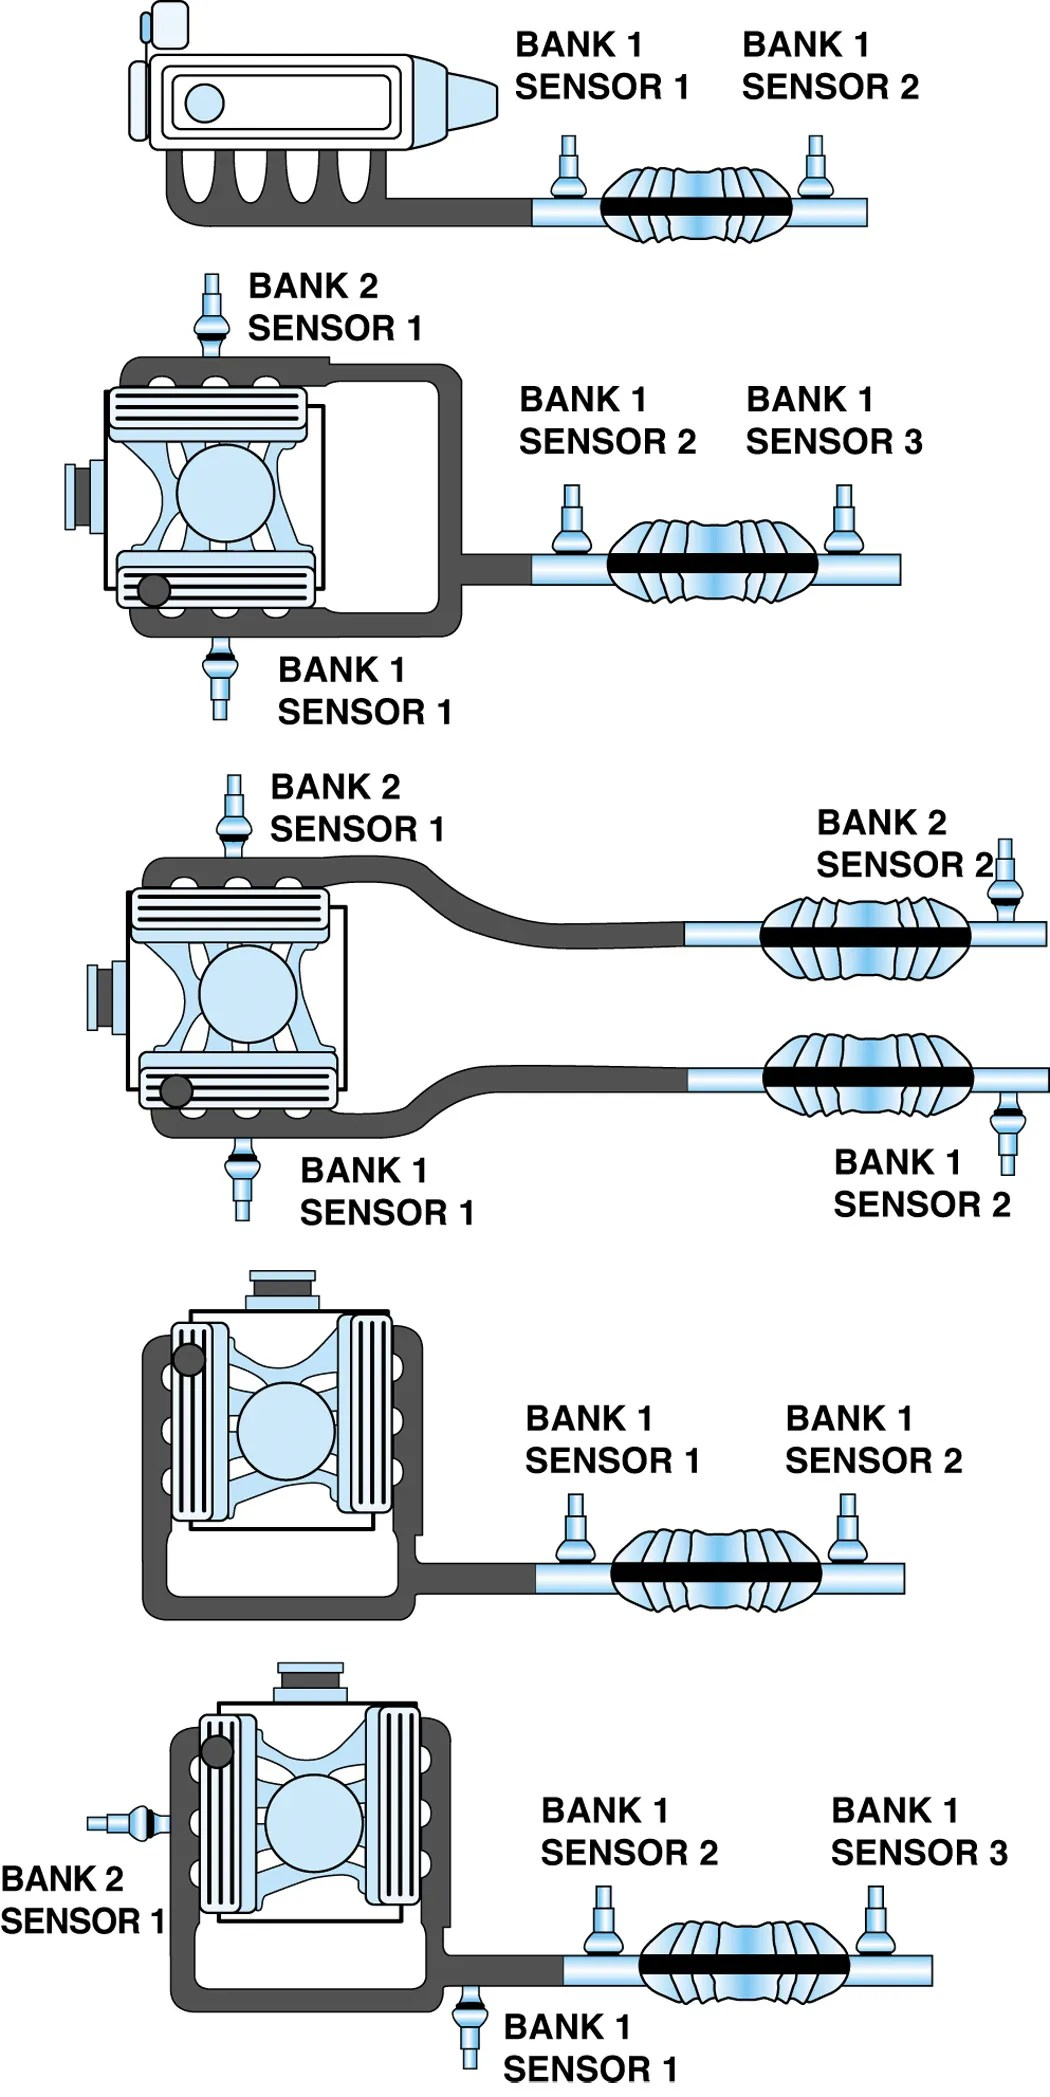 denso 4 wire o2 sensor wiring diagram typical p0430 – catalytic converter system, bank 2 -efficiency below threshold troublecodes.net